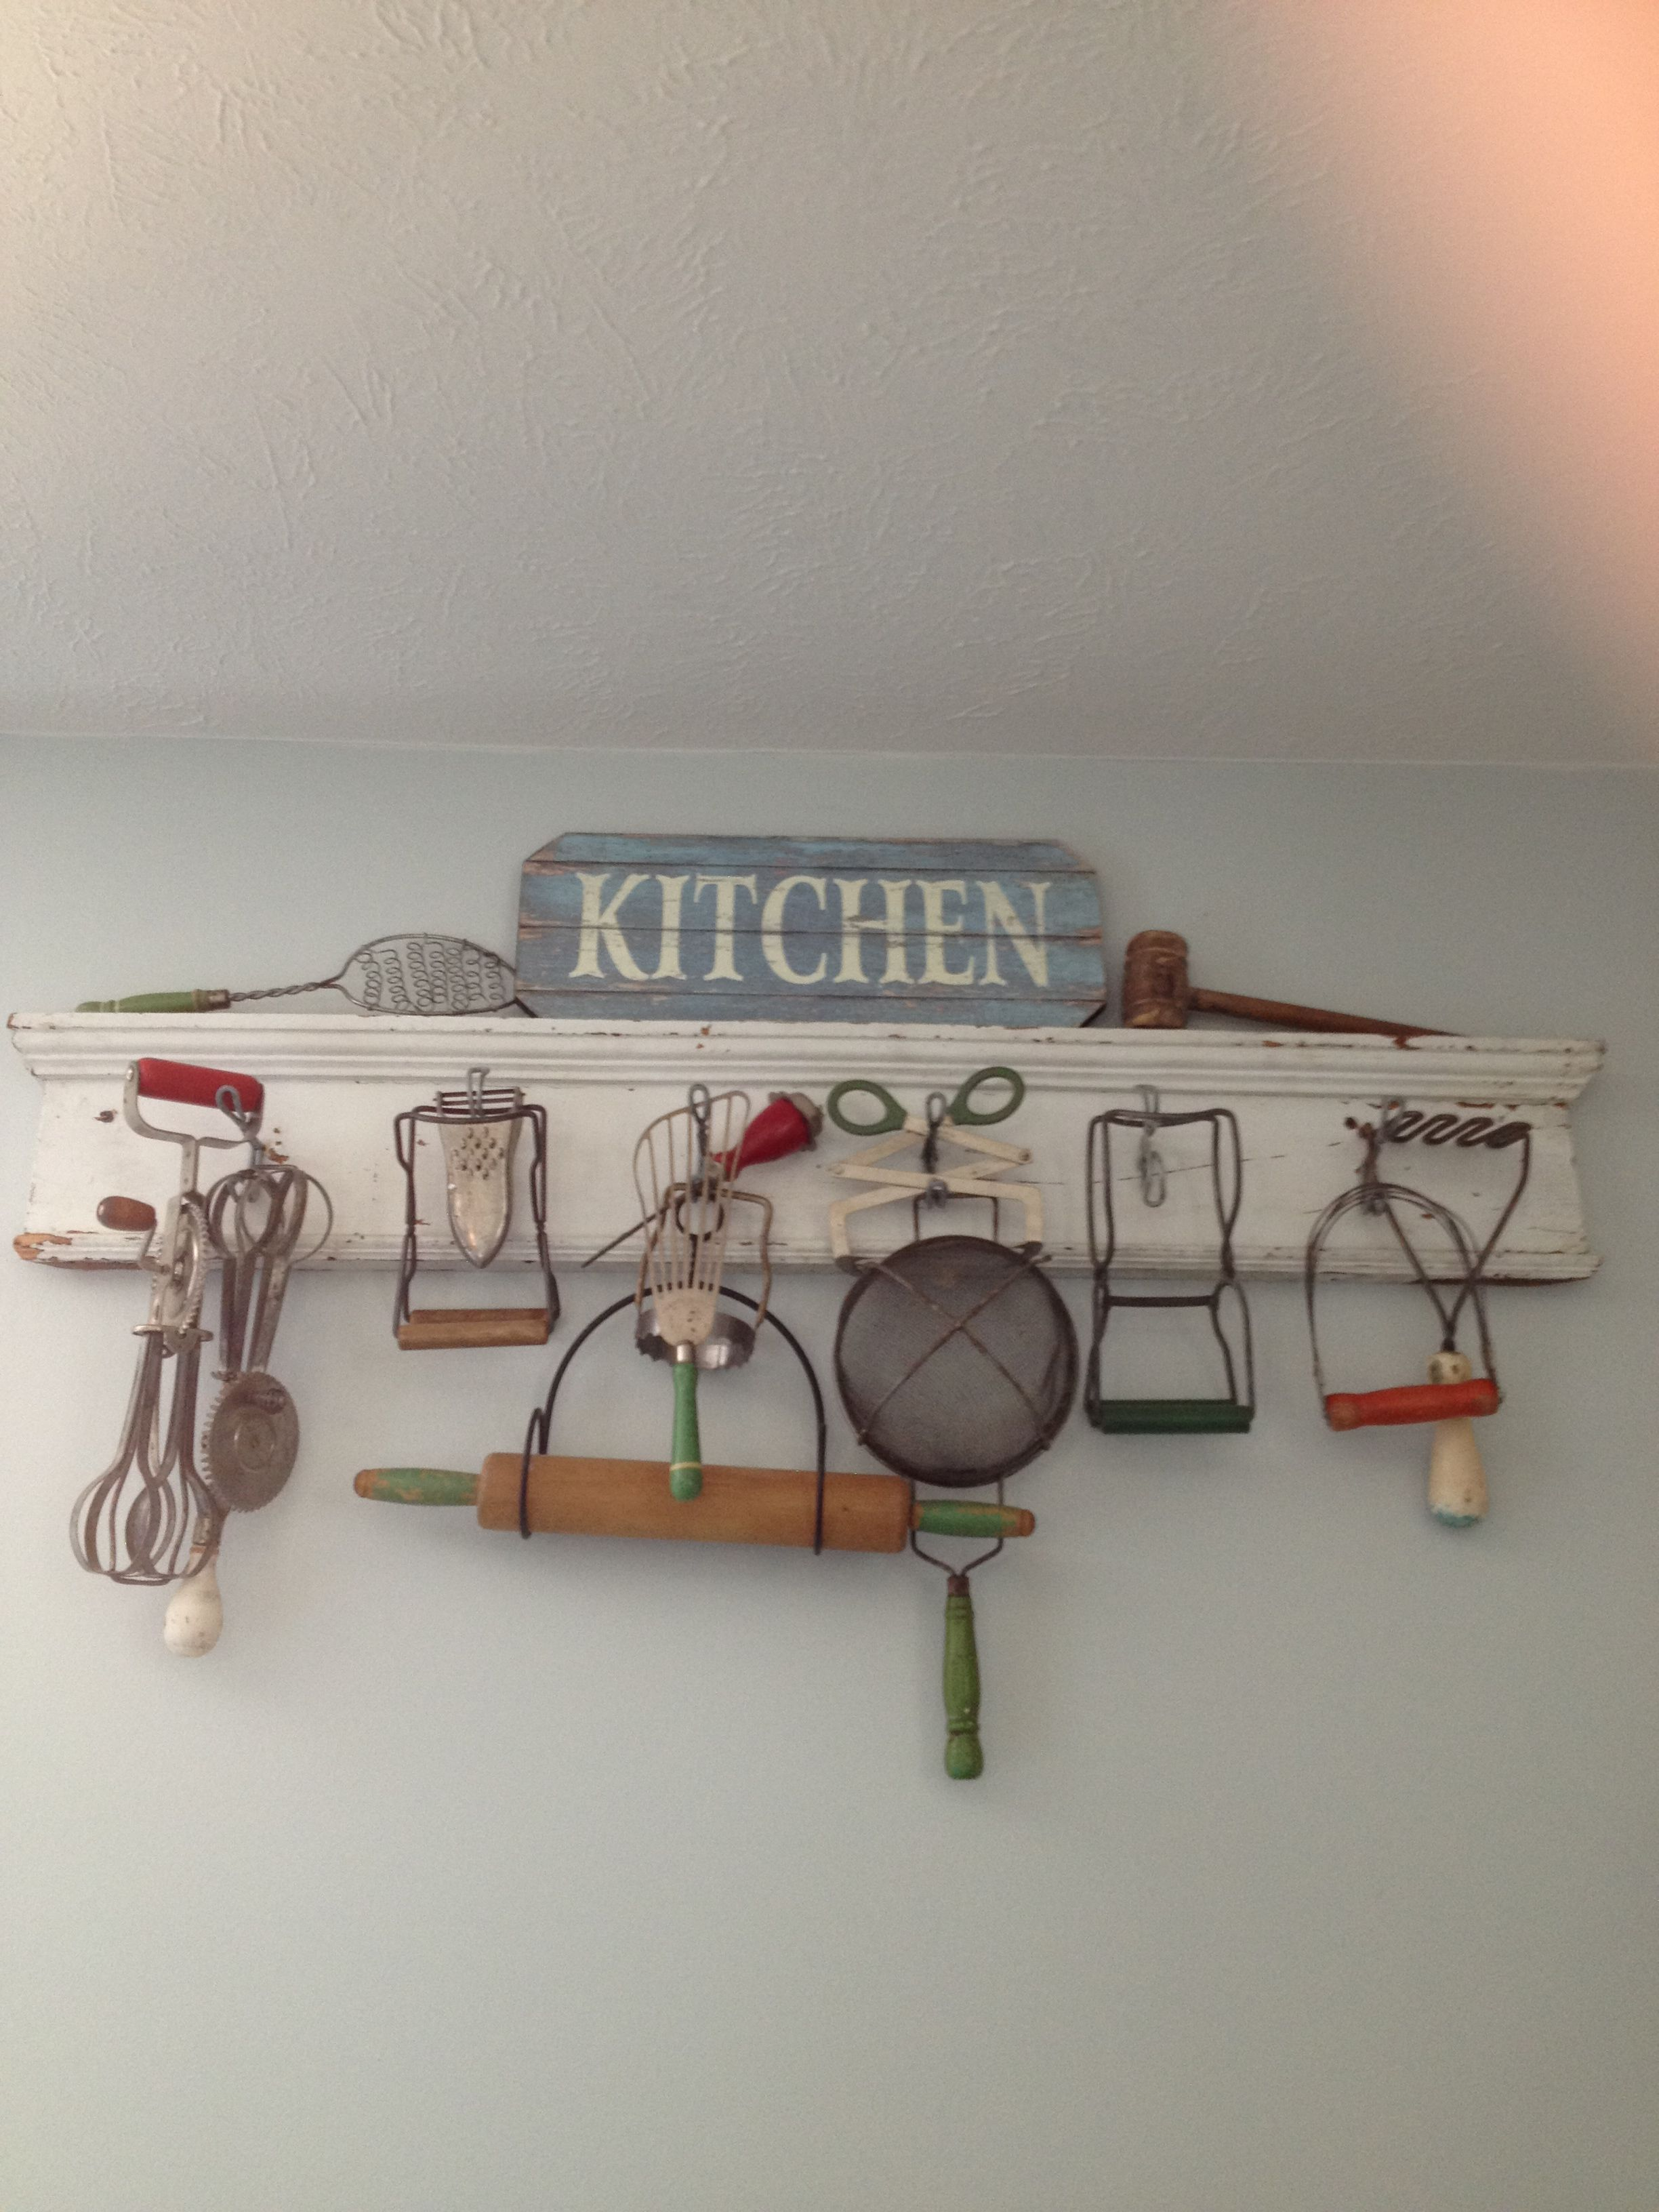 Modern Kitchen Accessories And Decor Old Vintage Wooden And Wire Kitchen Utensils On Display As Art